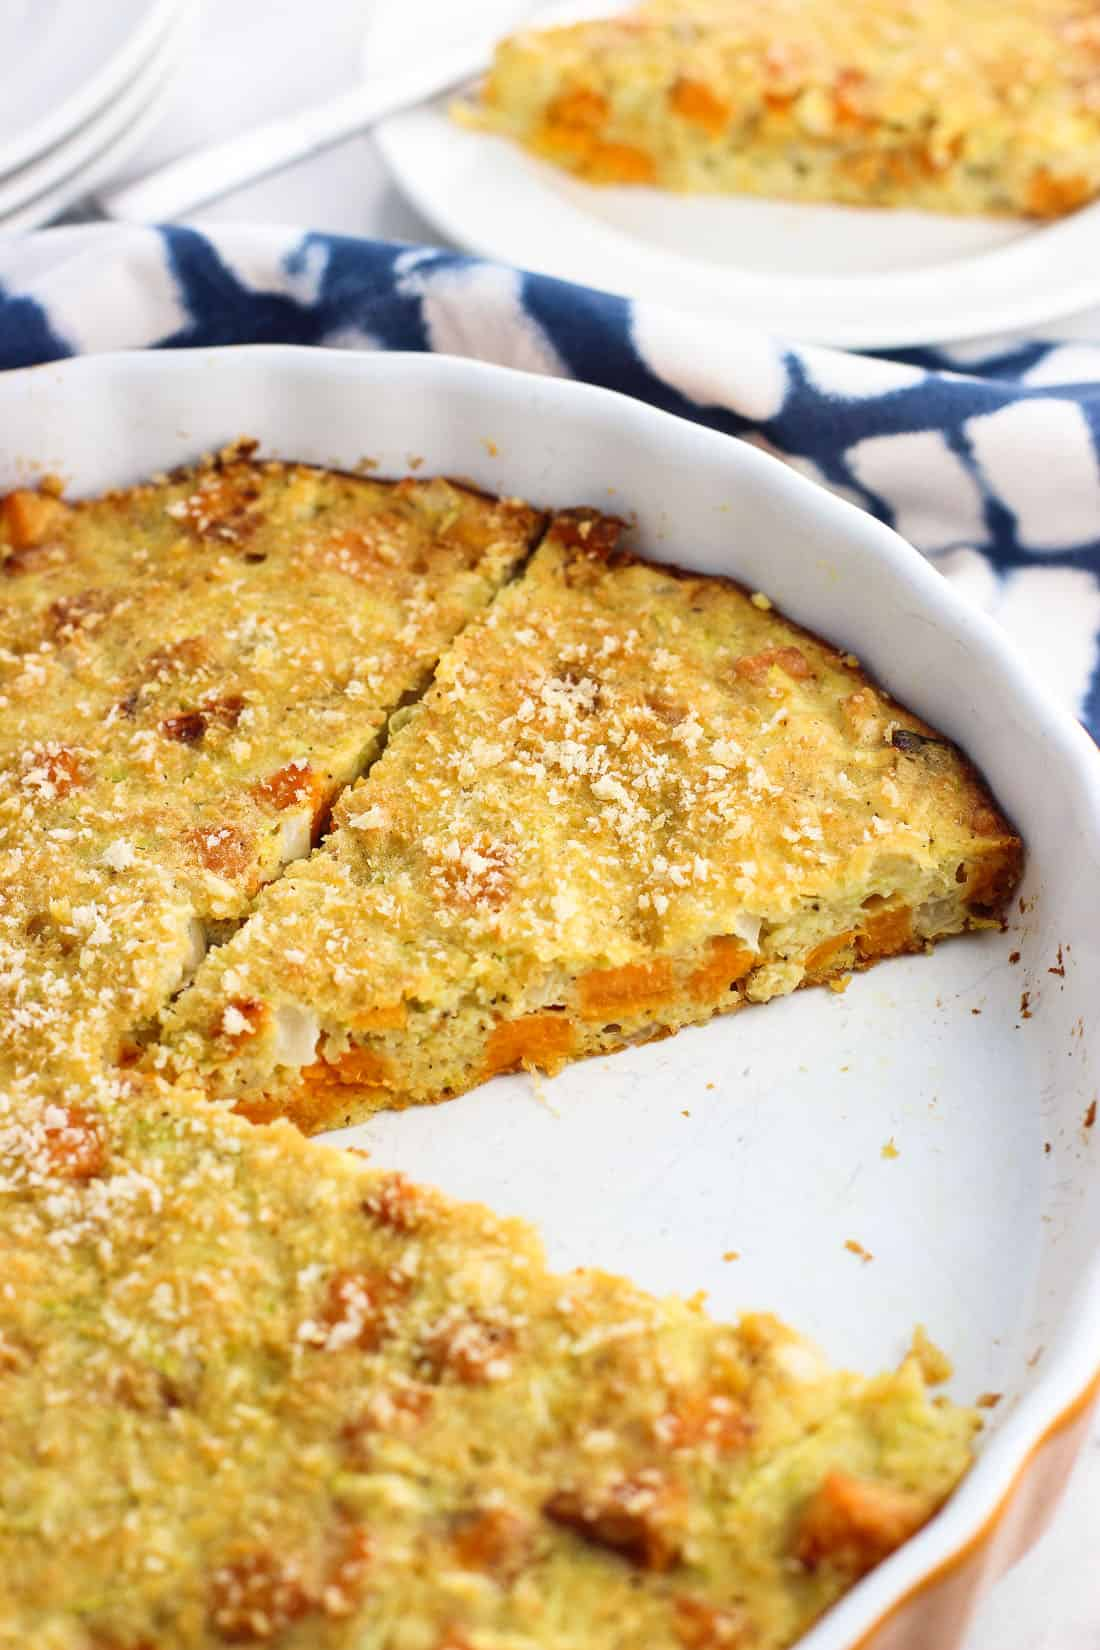 This easy sweet potato zucchini pie features sweet potato chunks, onion, and cheese with a crunchy panko topping. It makes its own crust as it bakes for a simple brunch, lunch, or dinner recipe.